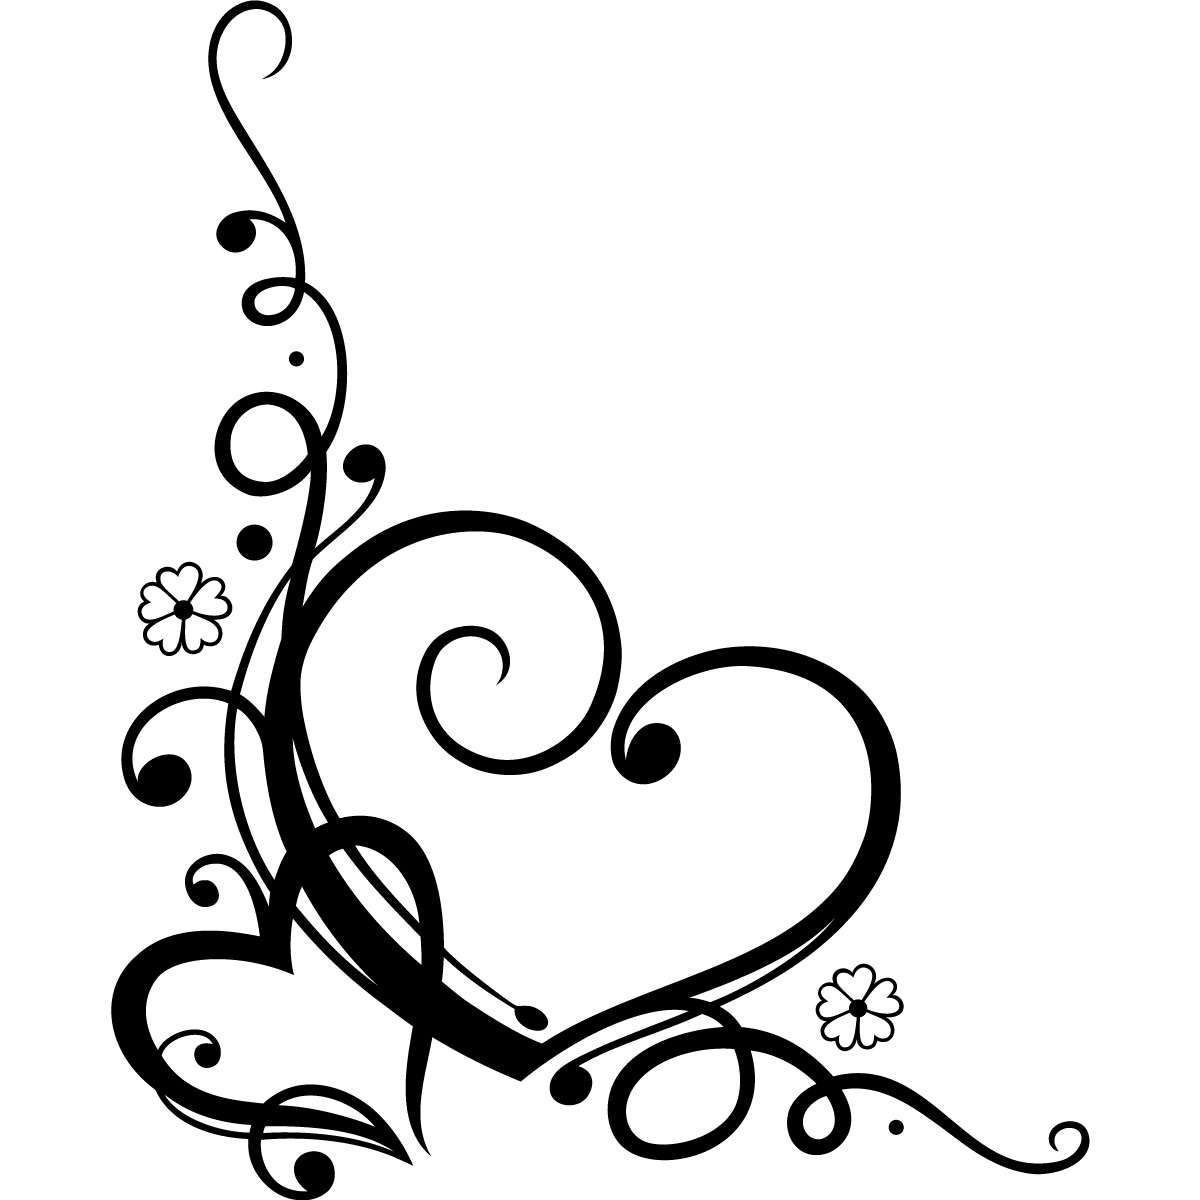 Swirl clipart love Love Wall Wall Floral Floral